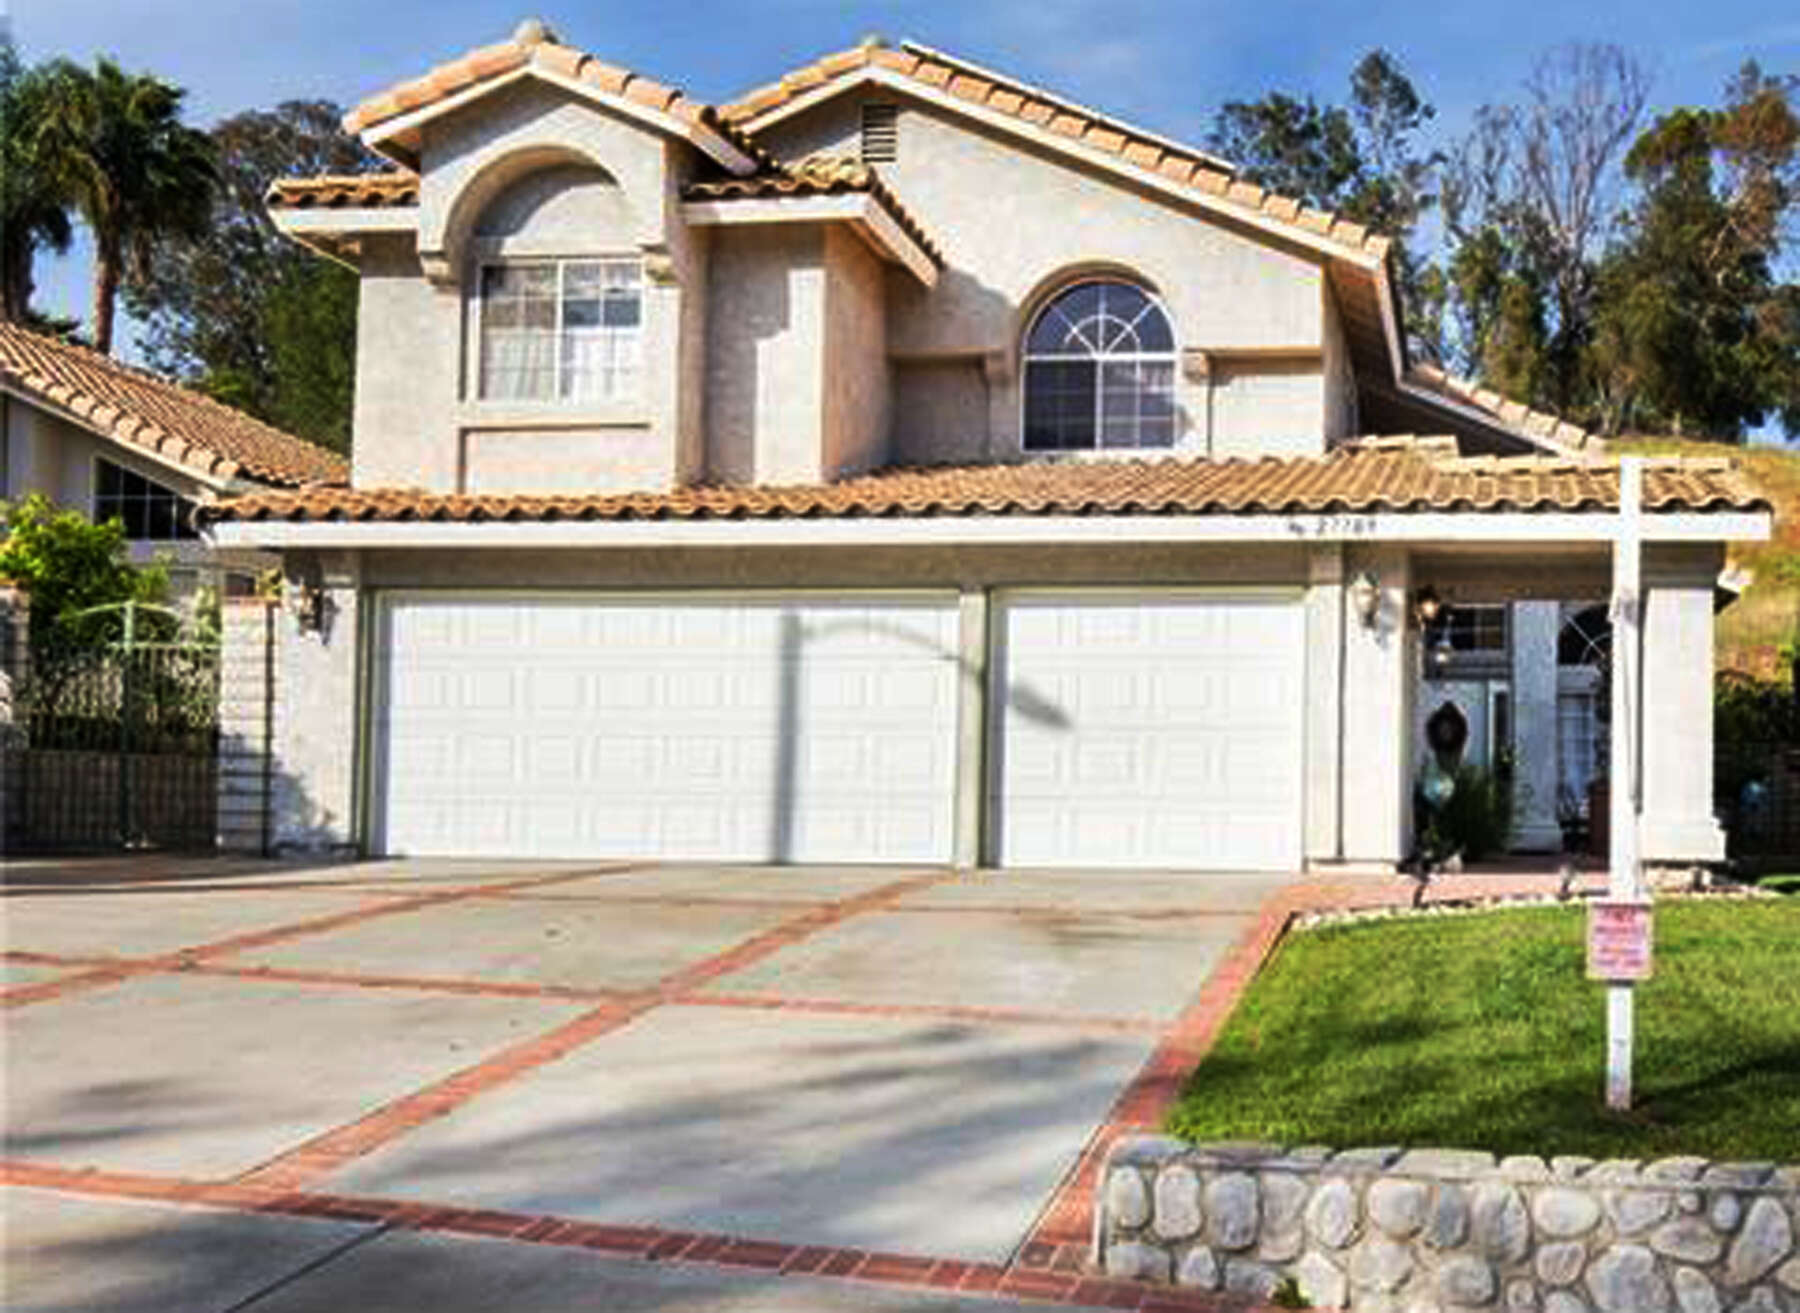 Single Family for Sale at 27709 Firebrand Dr Castaic, California 91384 United States